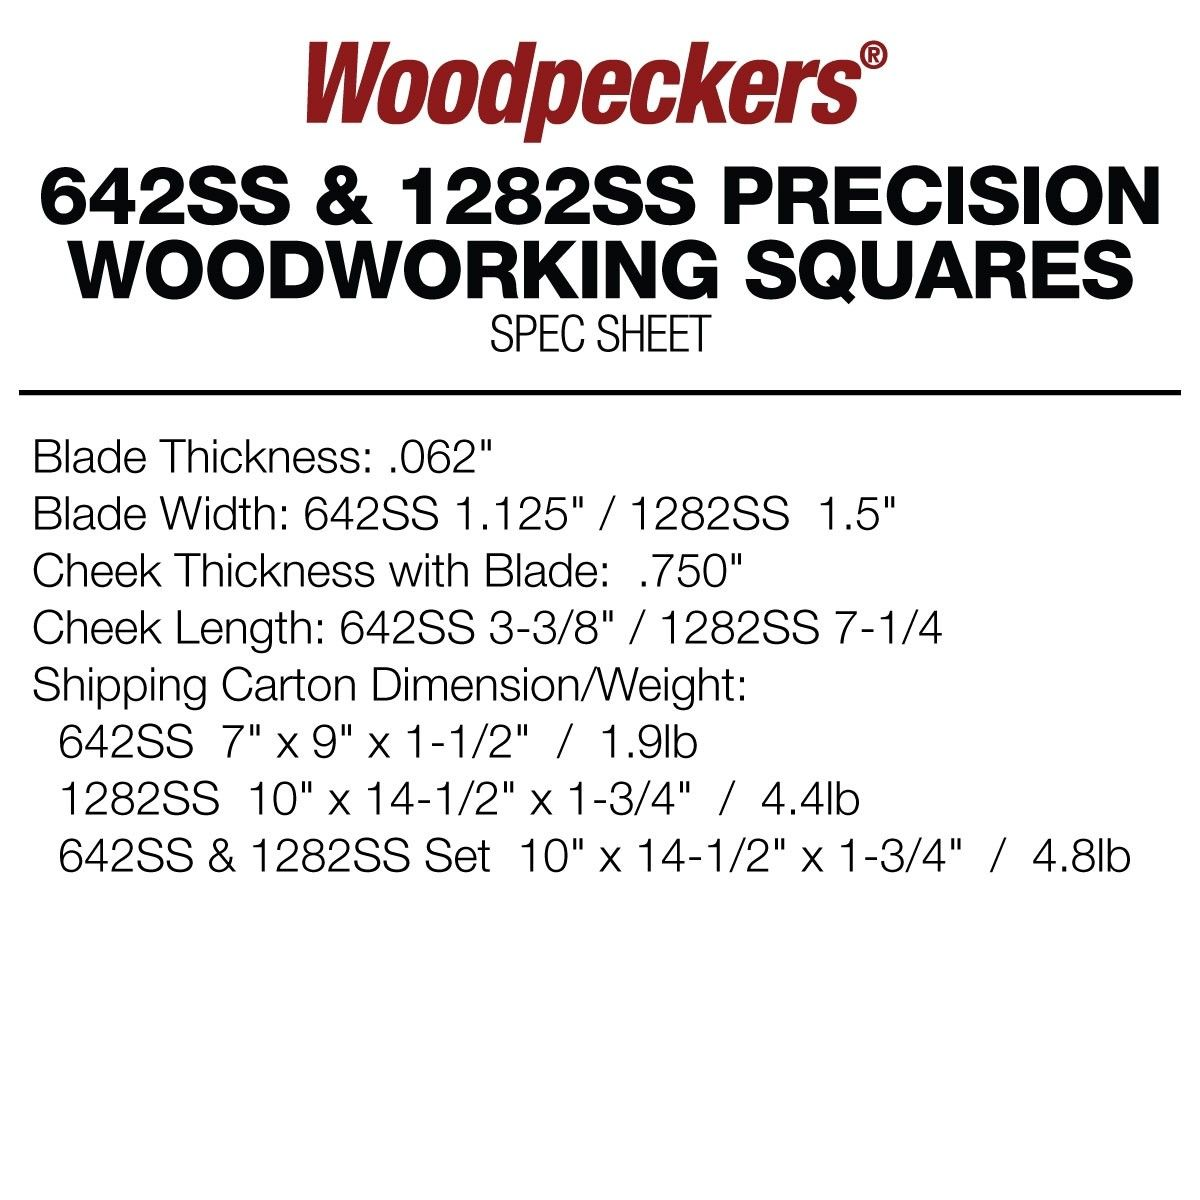 Woodpeckers Stainless Steel Squares With Images Woodworking Square Stainless Steel Plate Steel Design